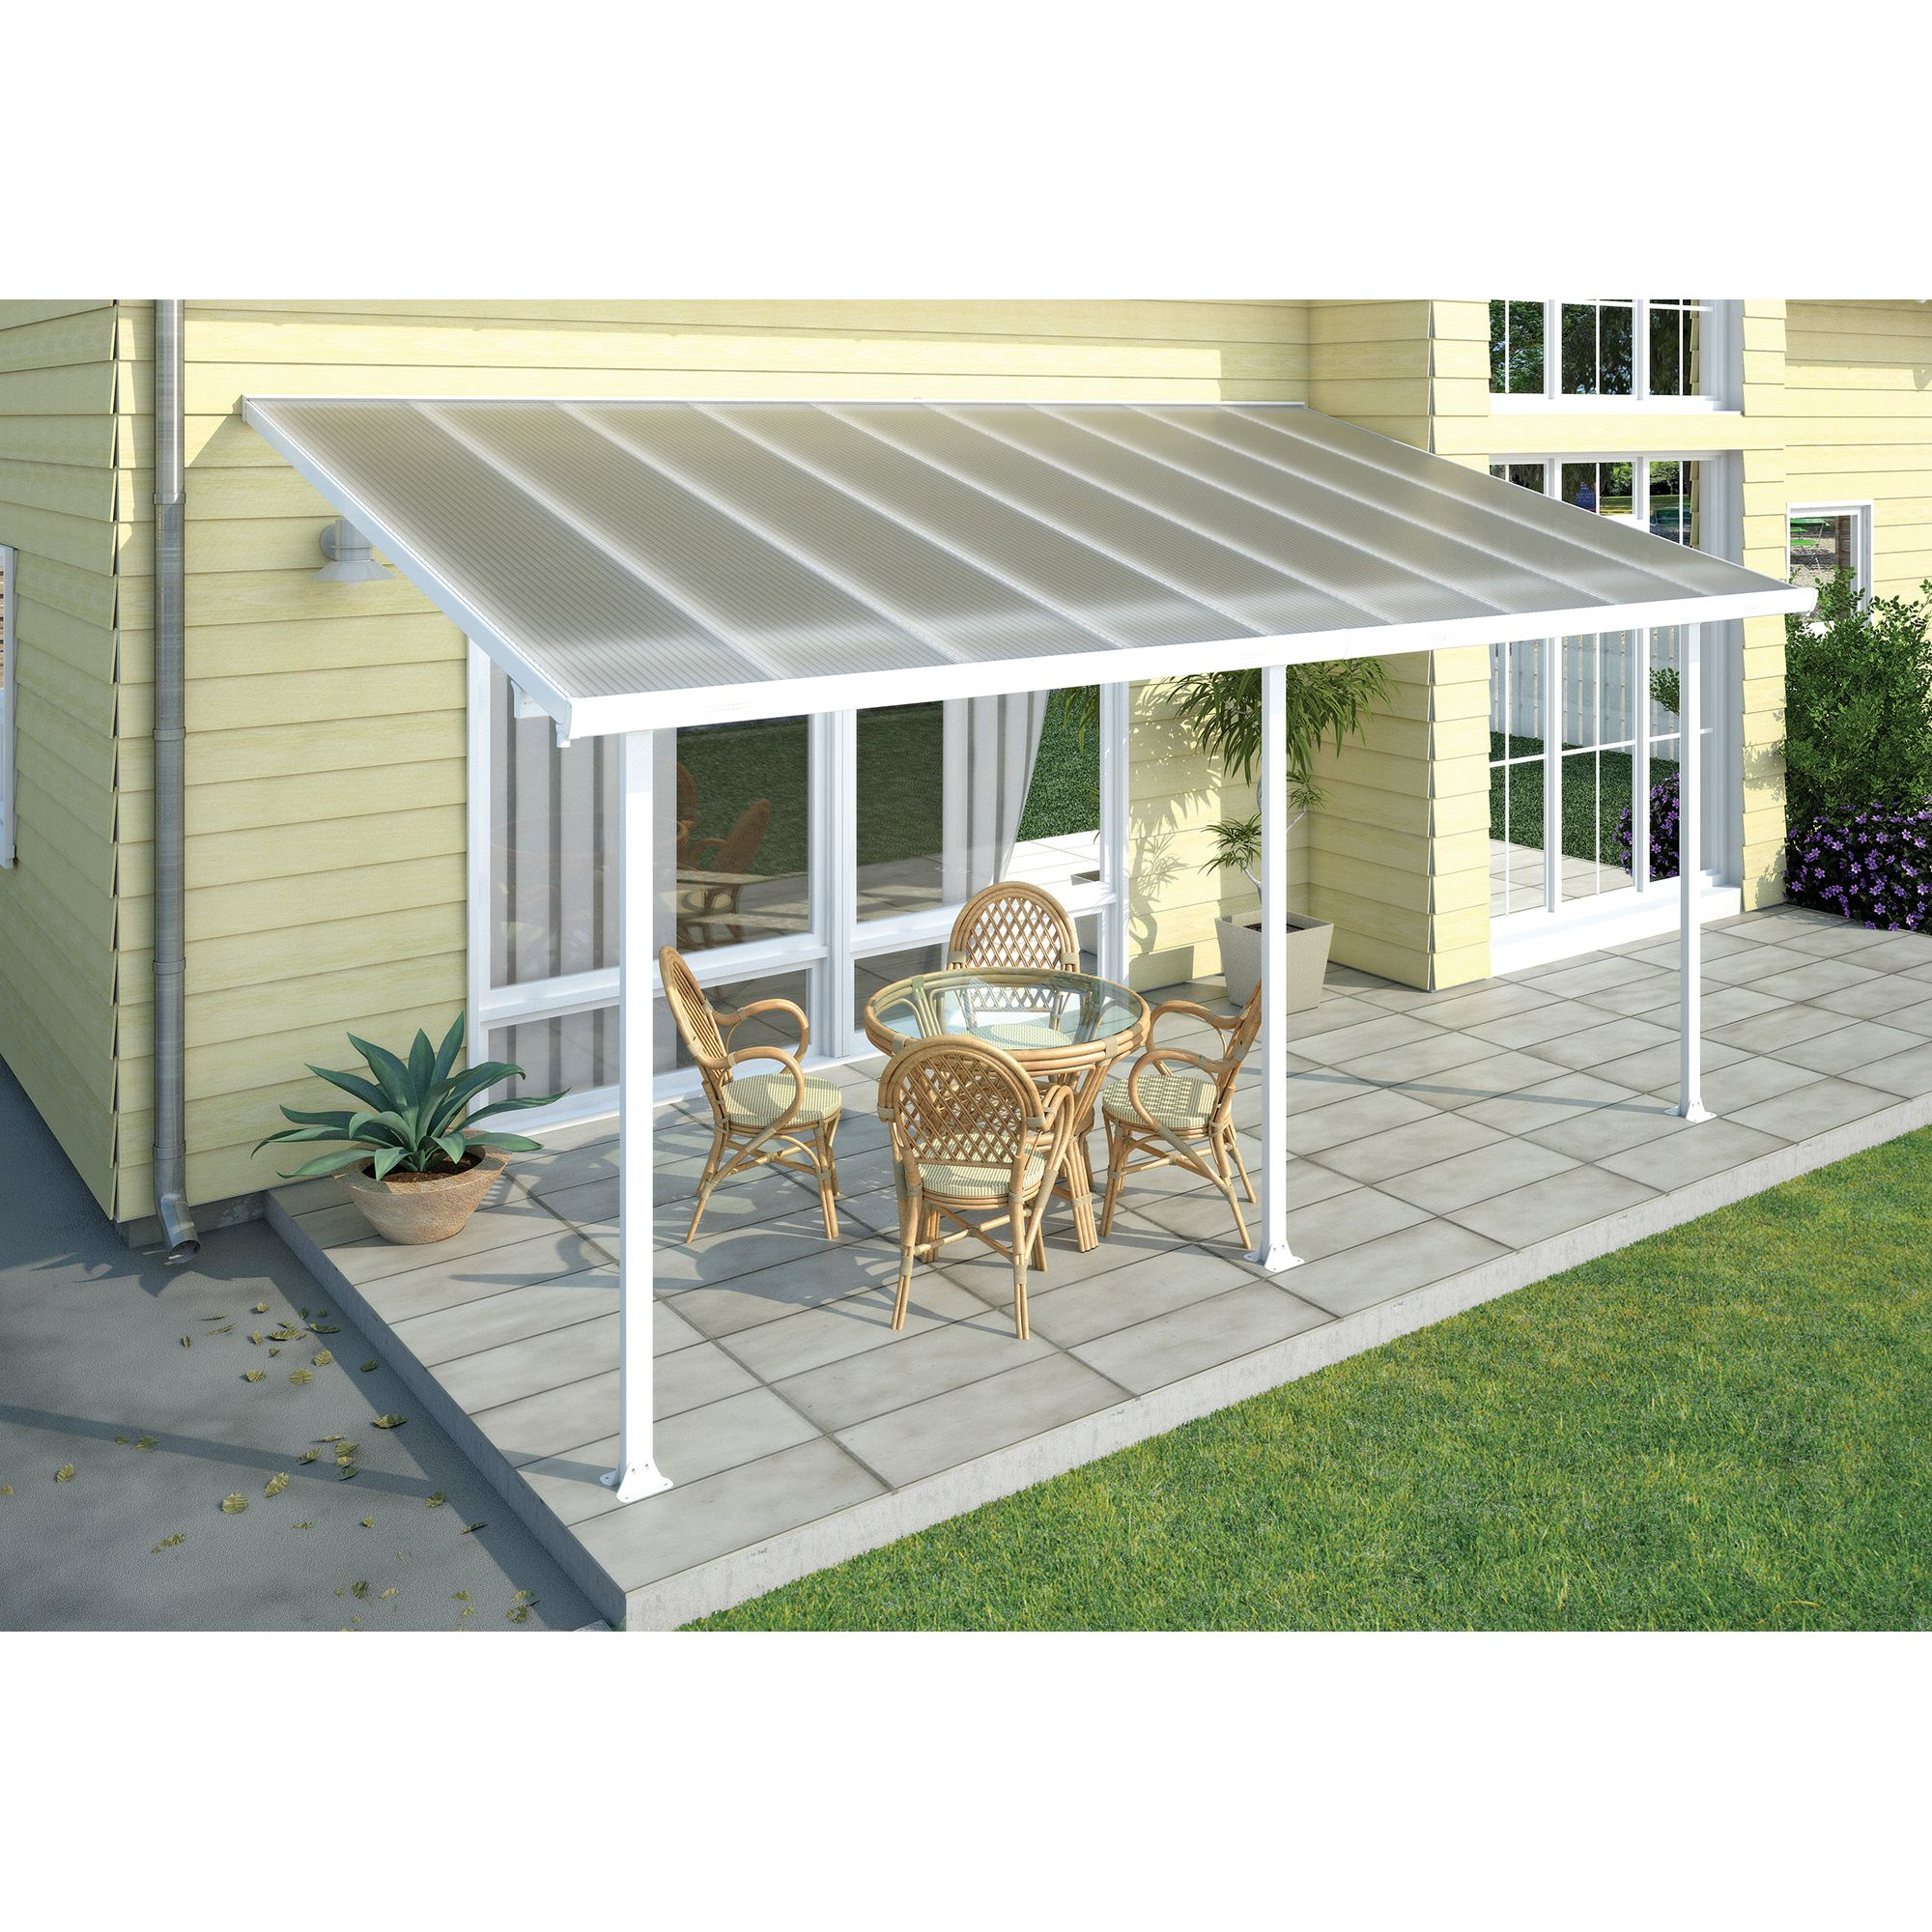 FERIA LEAN TO CARPORT AND PATIO COVER 3X9.15 WHITE at Tesco Direct